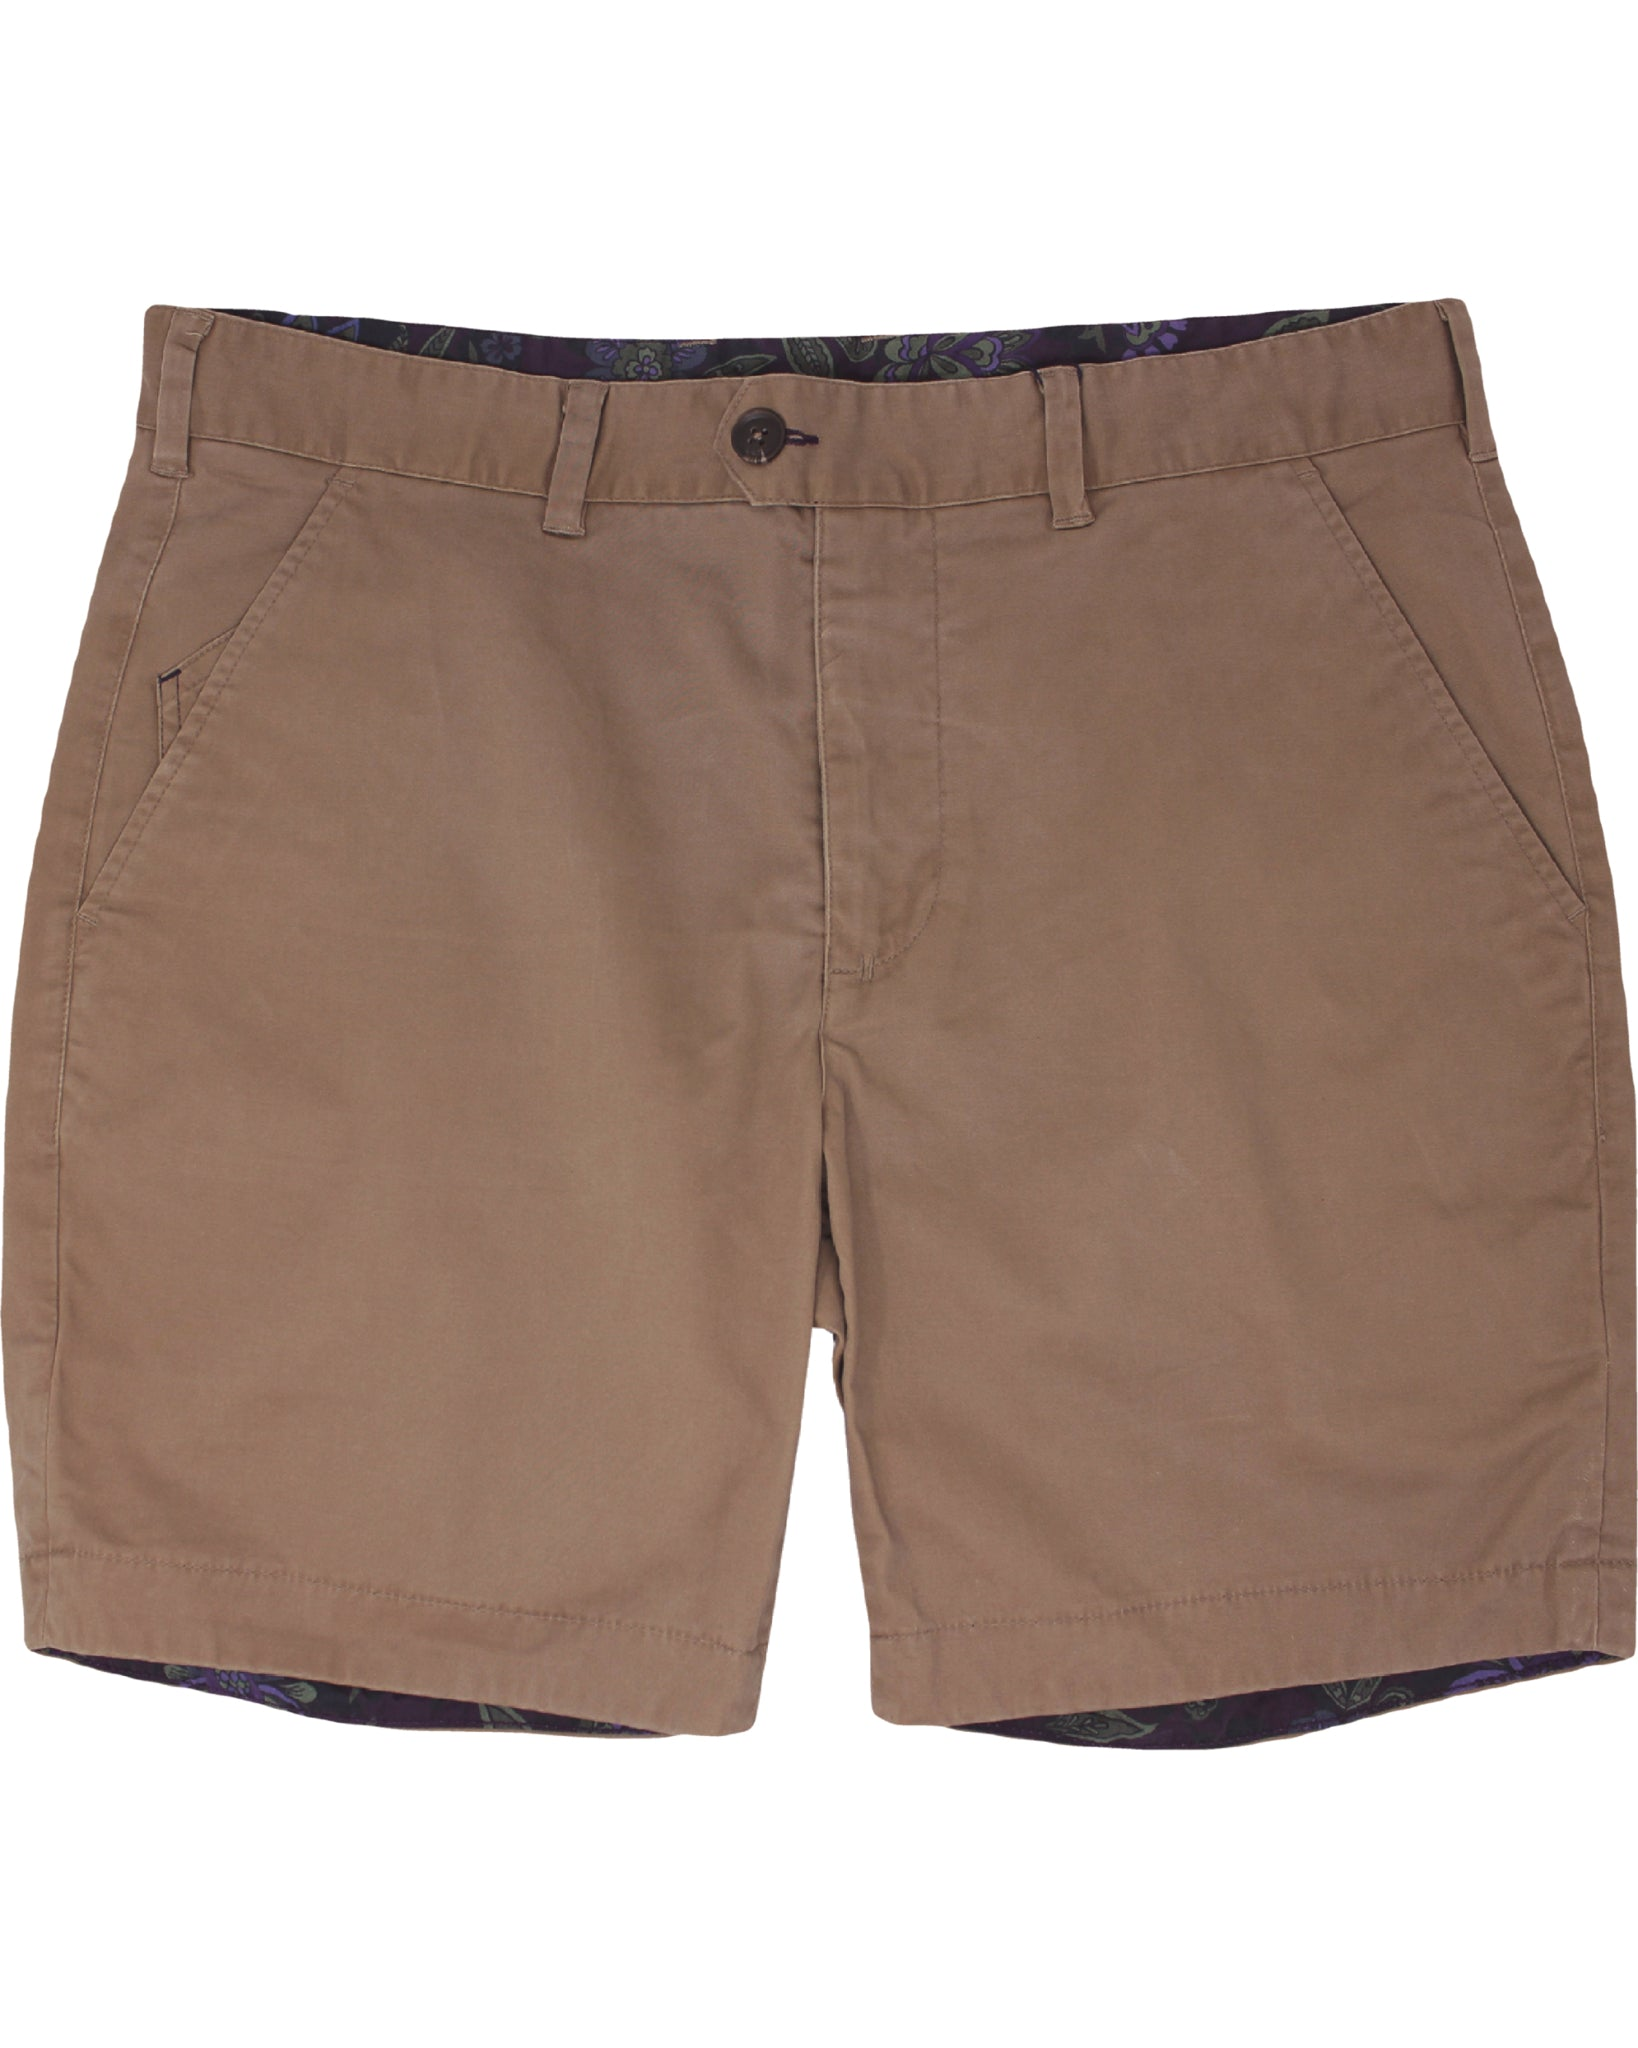 John Solid Flat Front Short: Tan